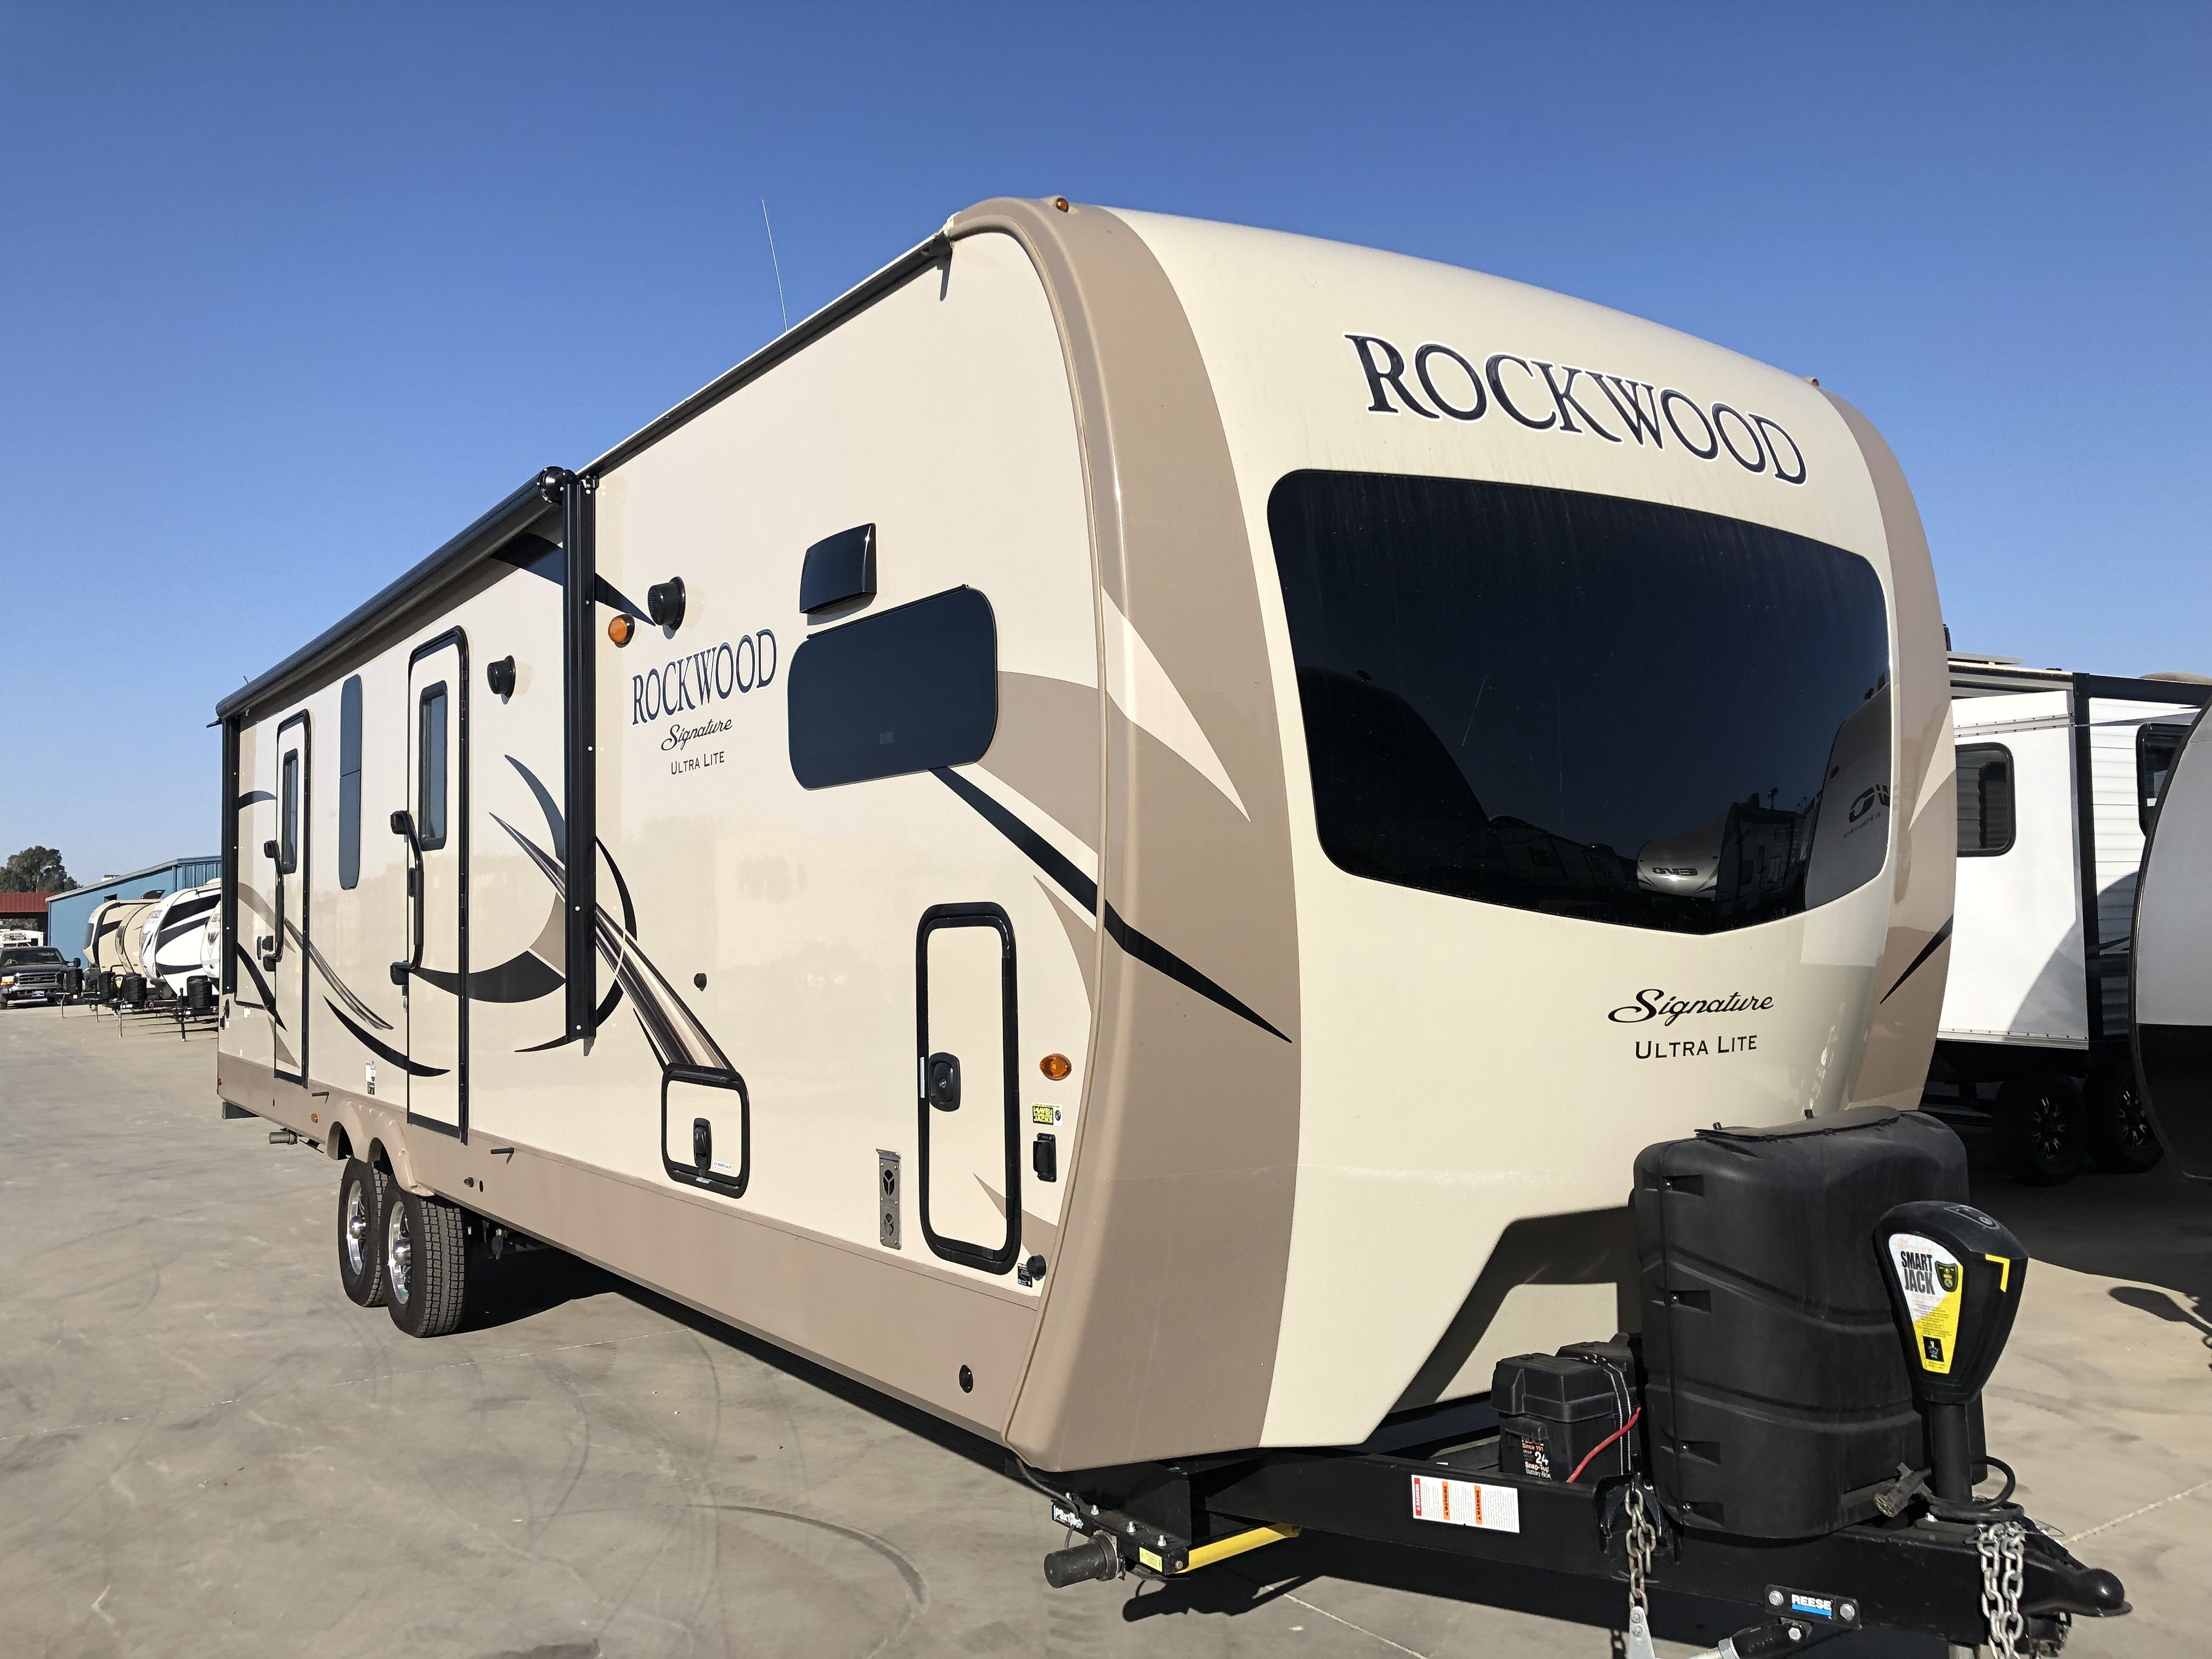 Used 2019 Rockwood 8335bss 209 273 3232 With Images Rockwood